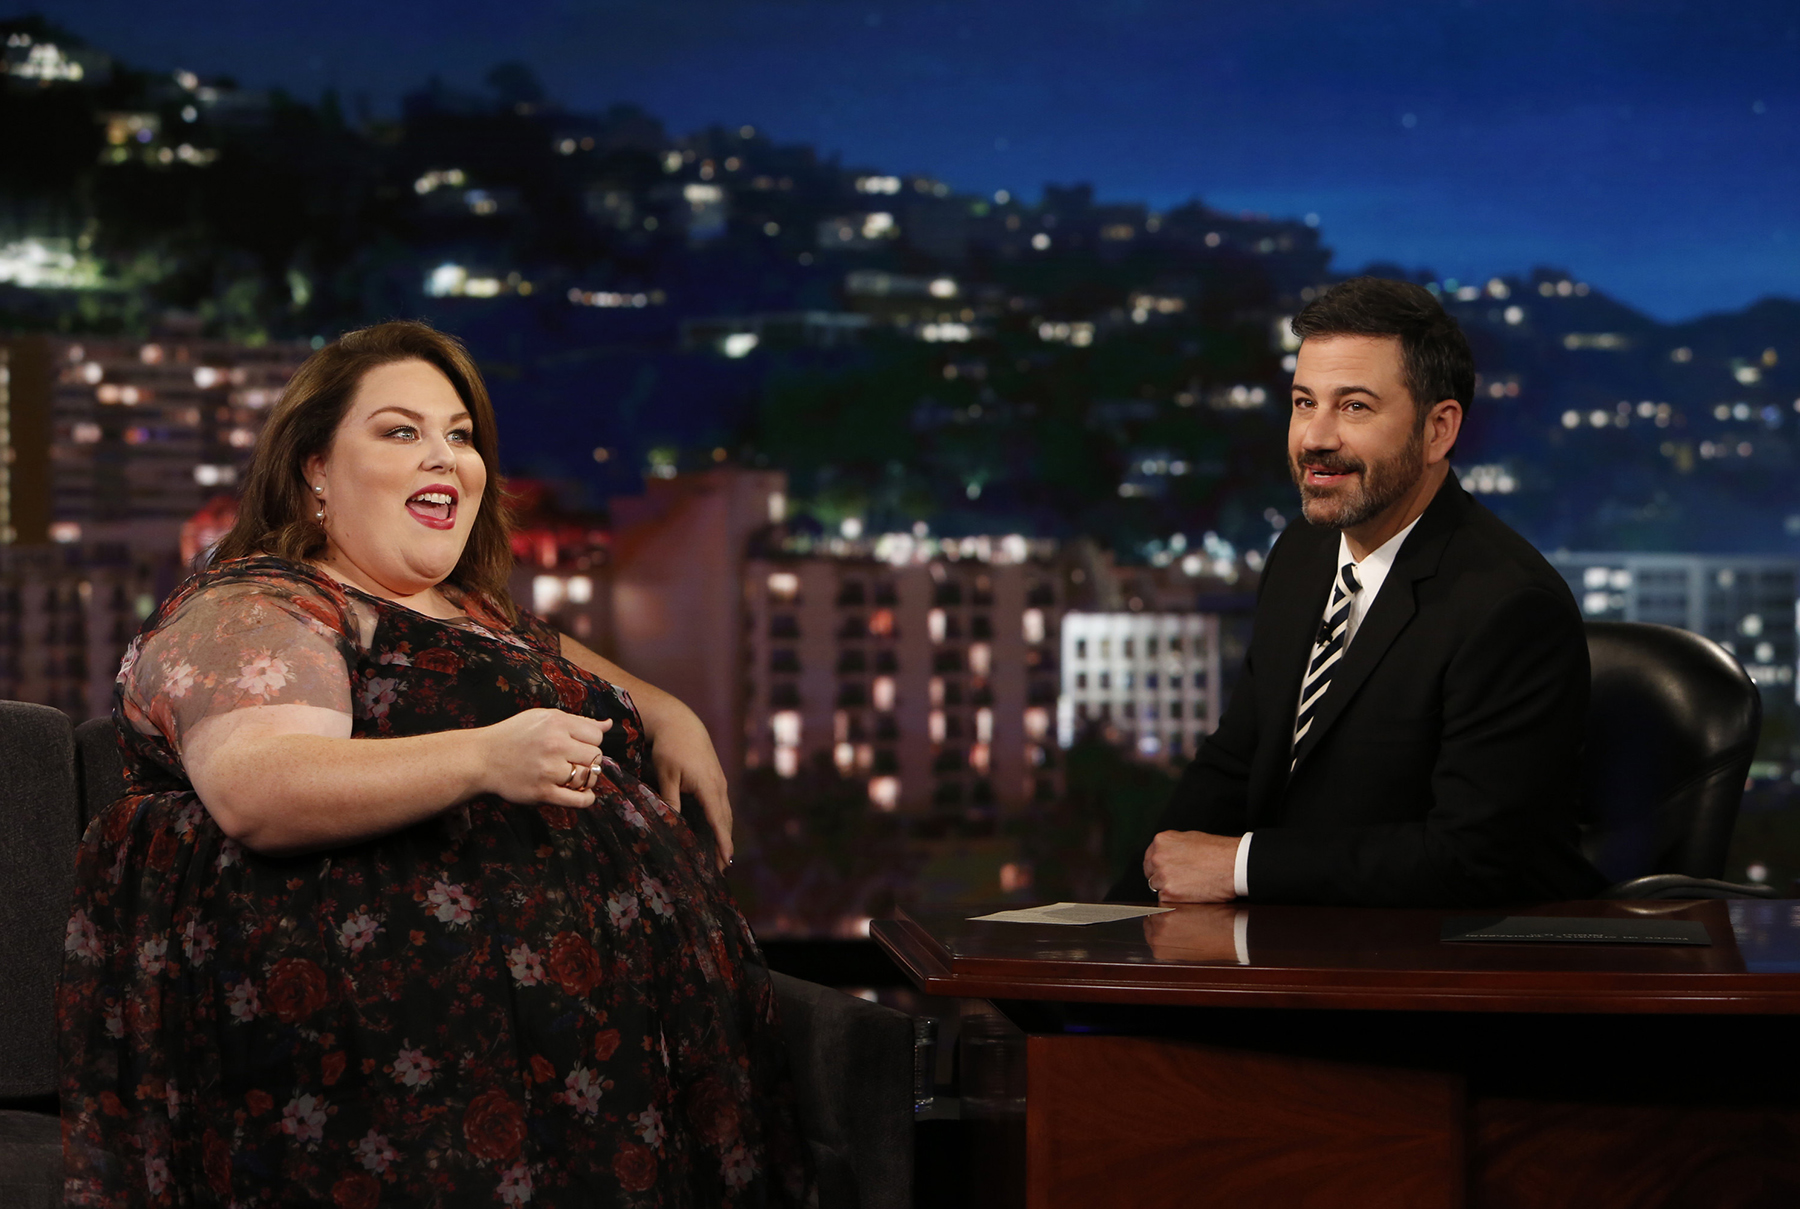 Chrissy Metz on Jimmy Kimmel